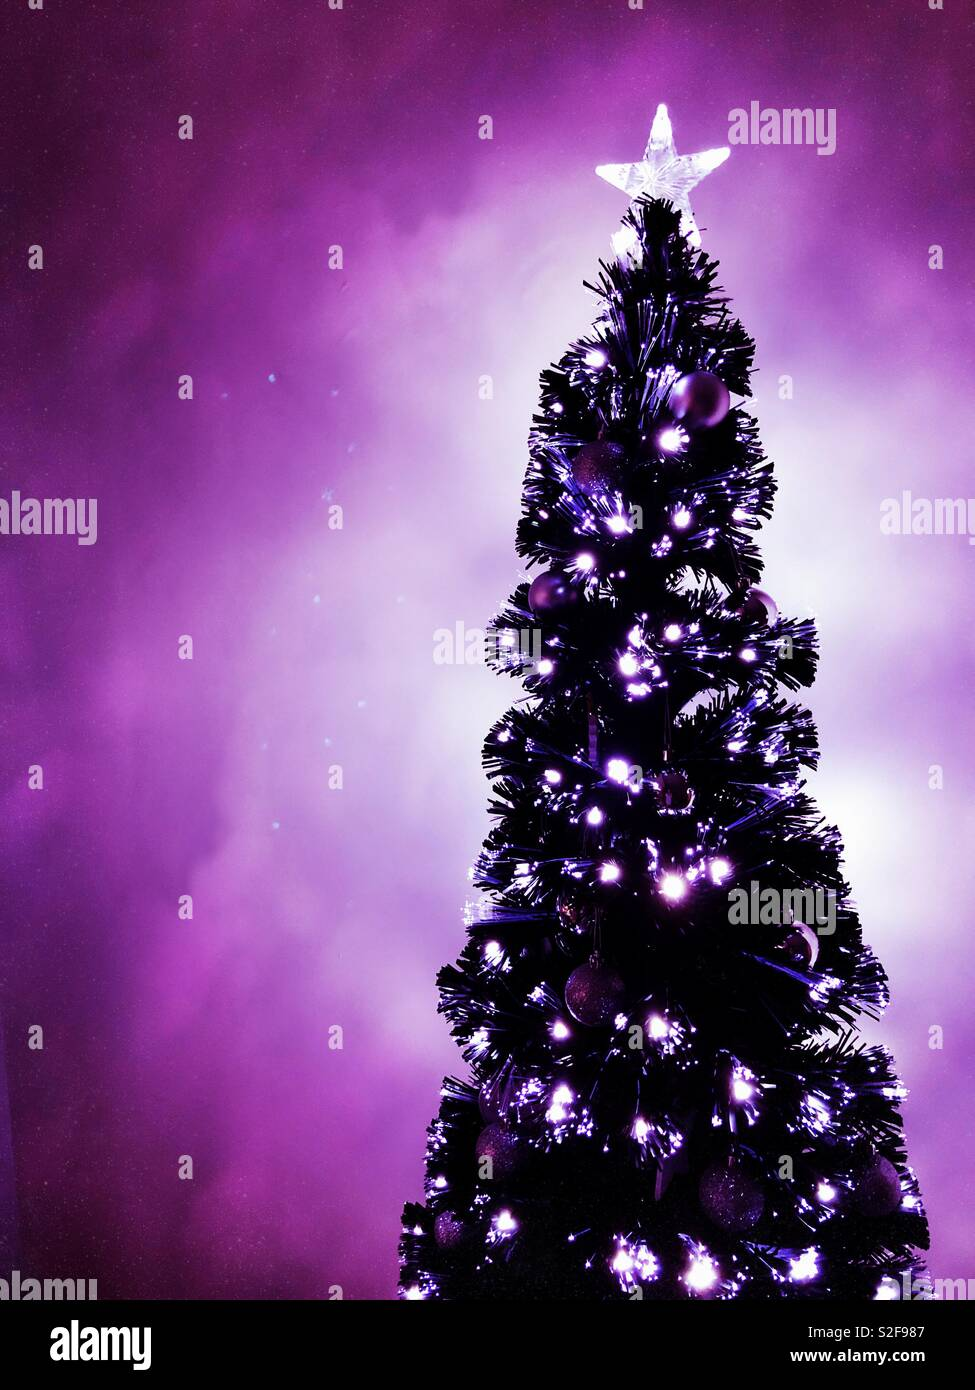 Glowing Black Christmas Tree With Silver Decorations And Purple Glow Stock Photo Alamy